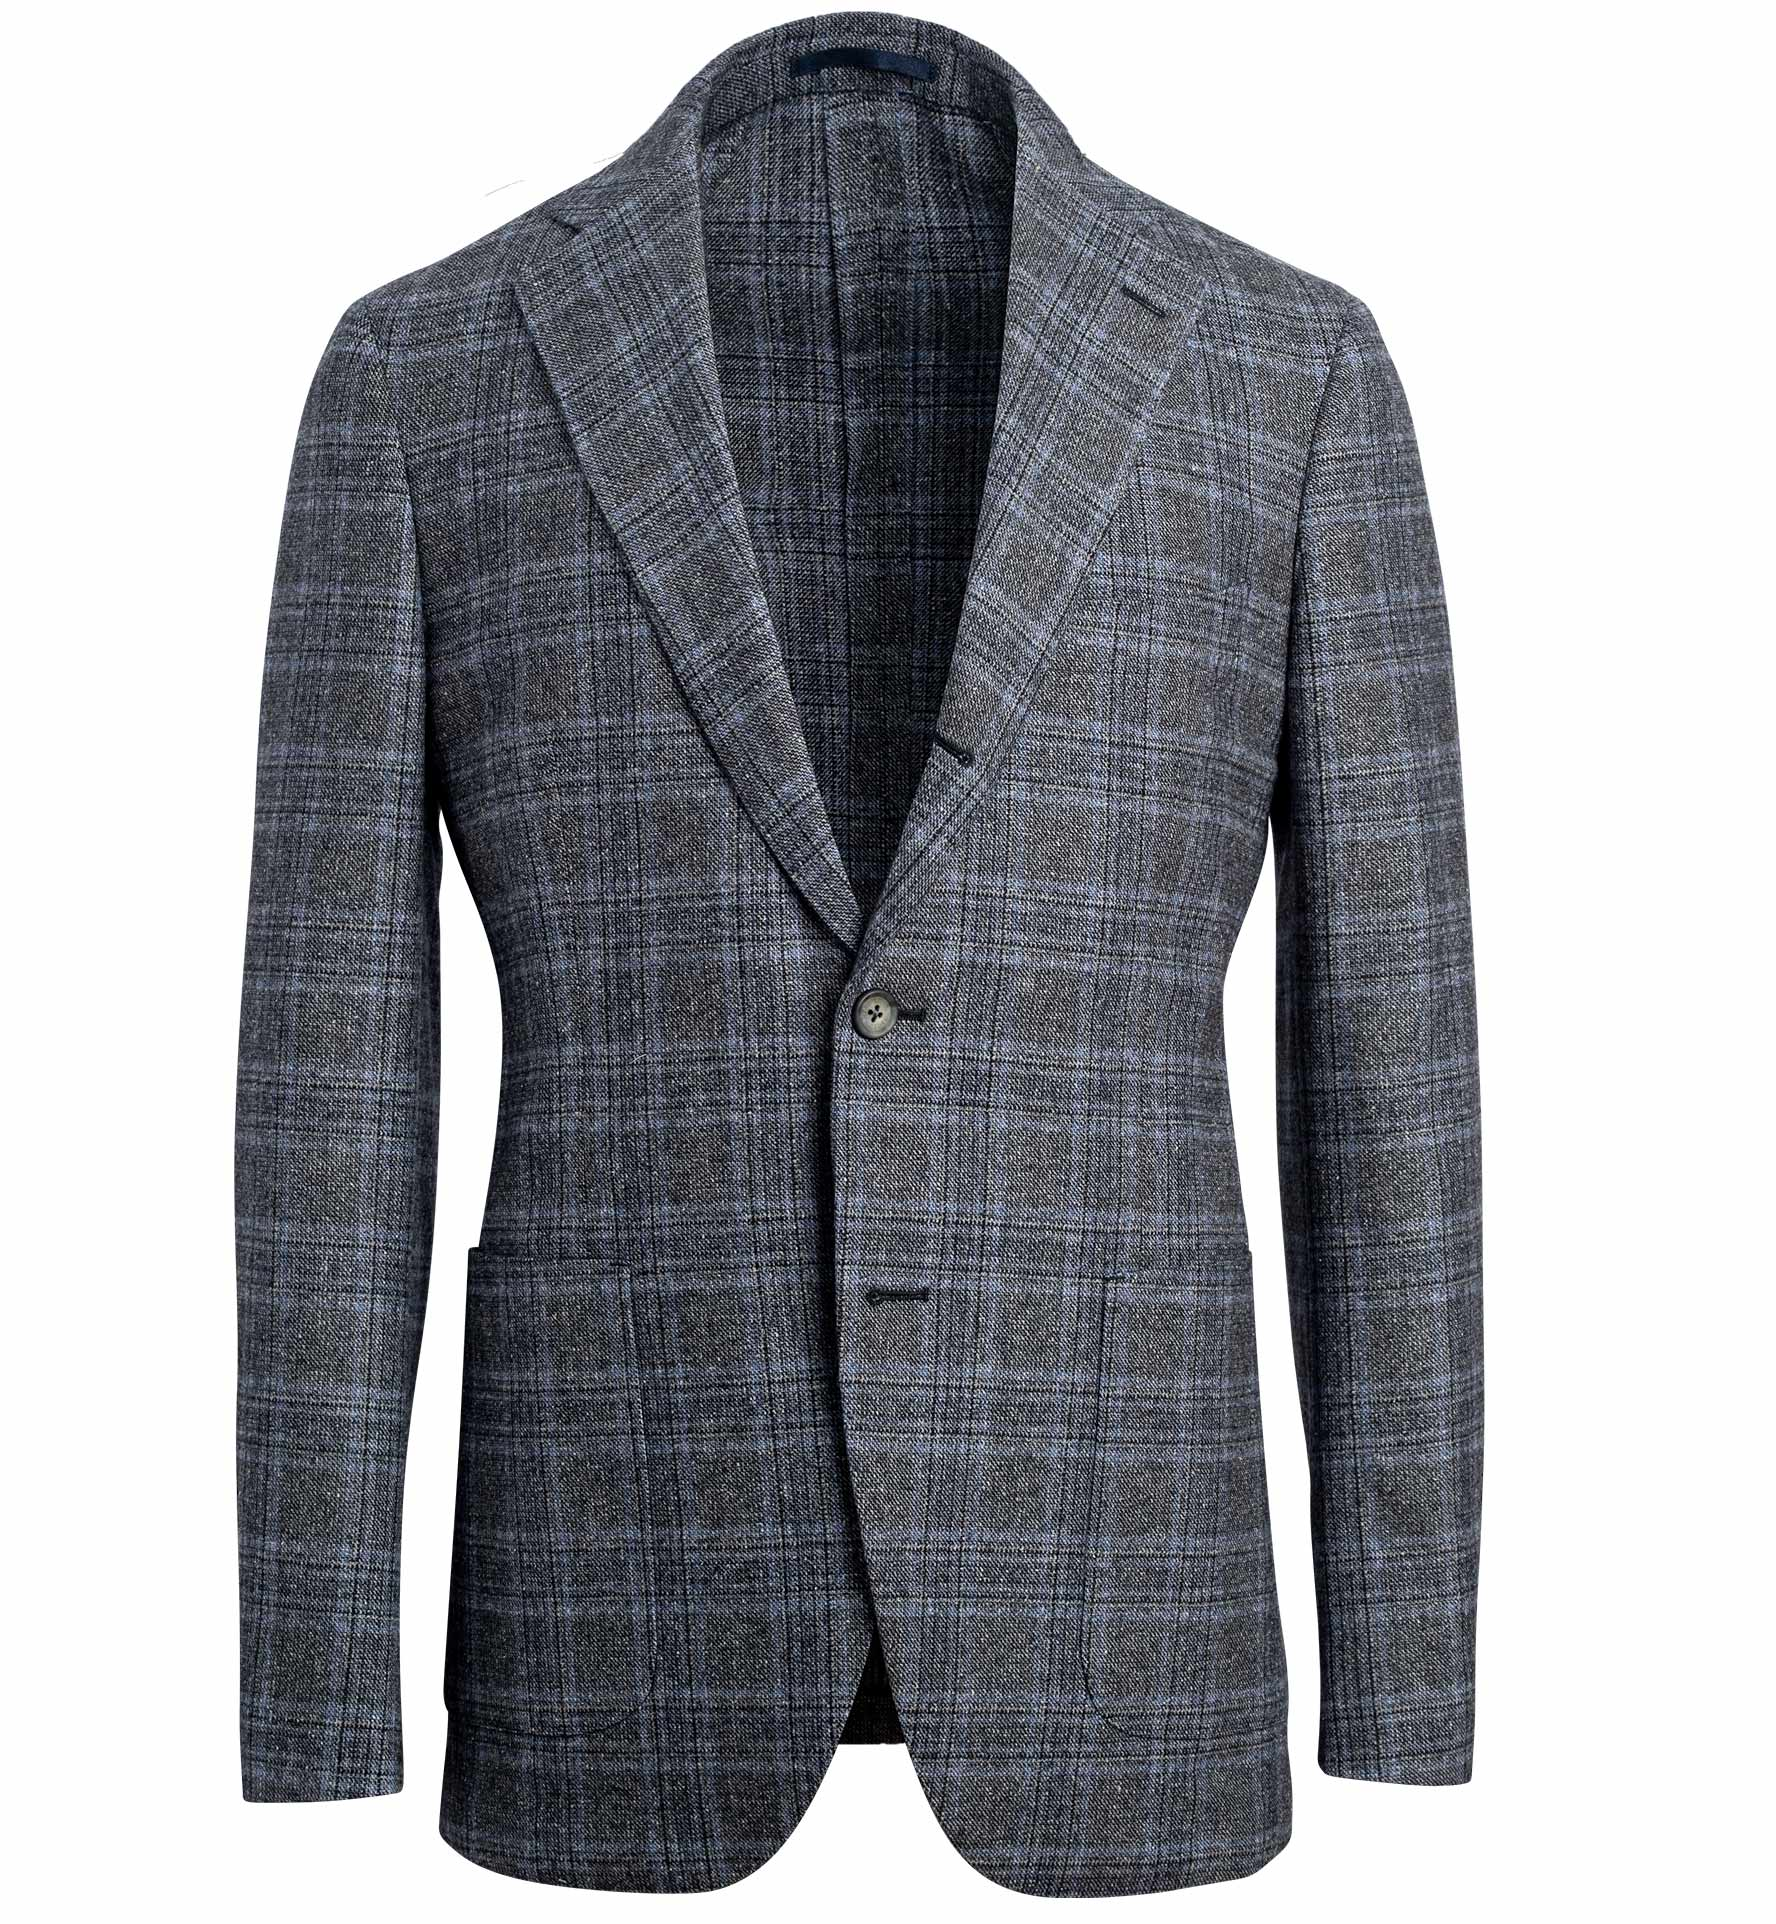 Zoom Image of Bedford Grey Plaid Donegal Wool and Silk Jacket